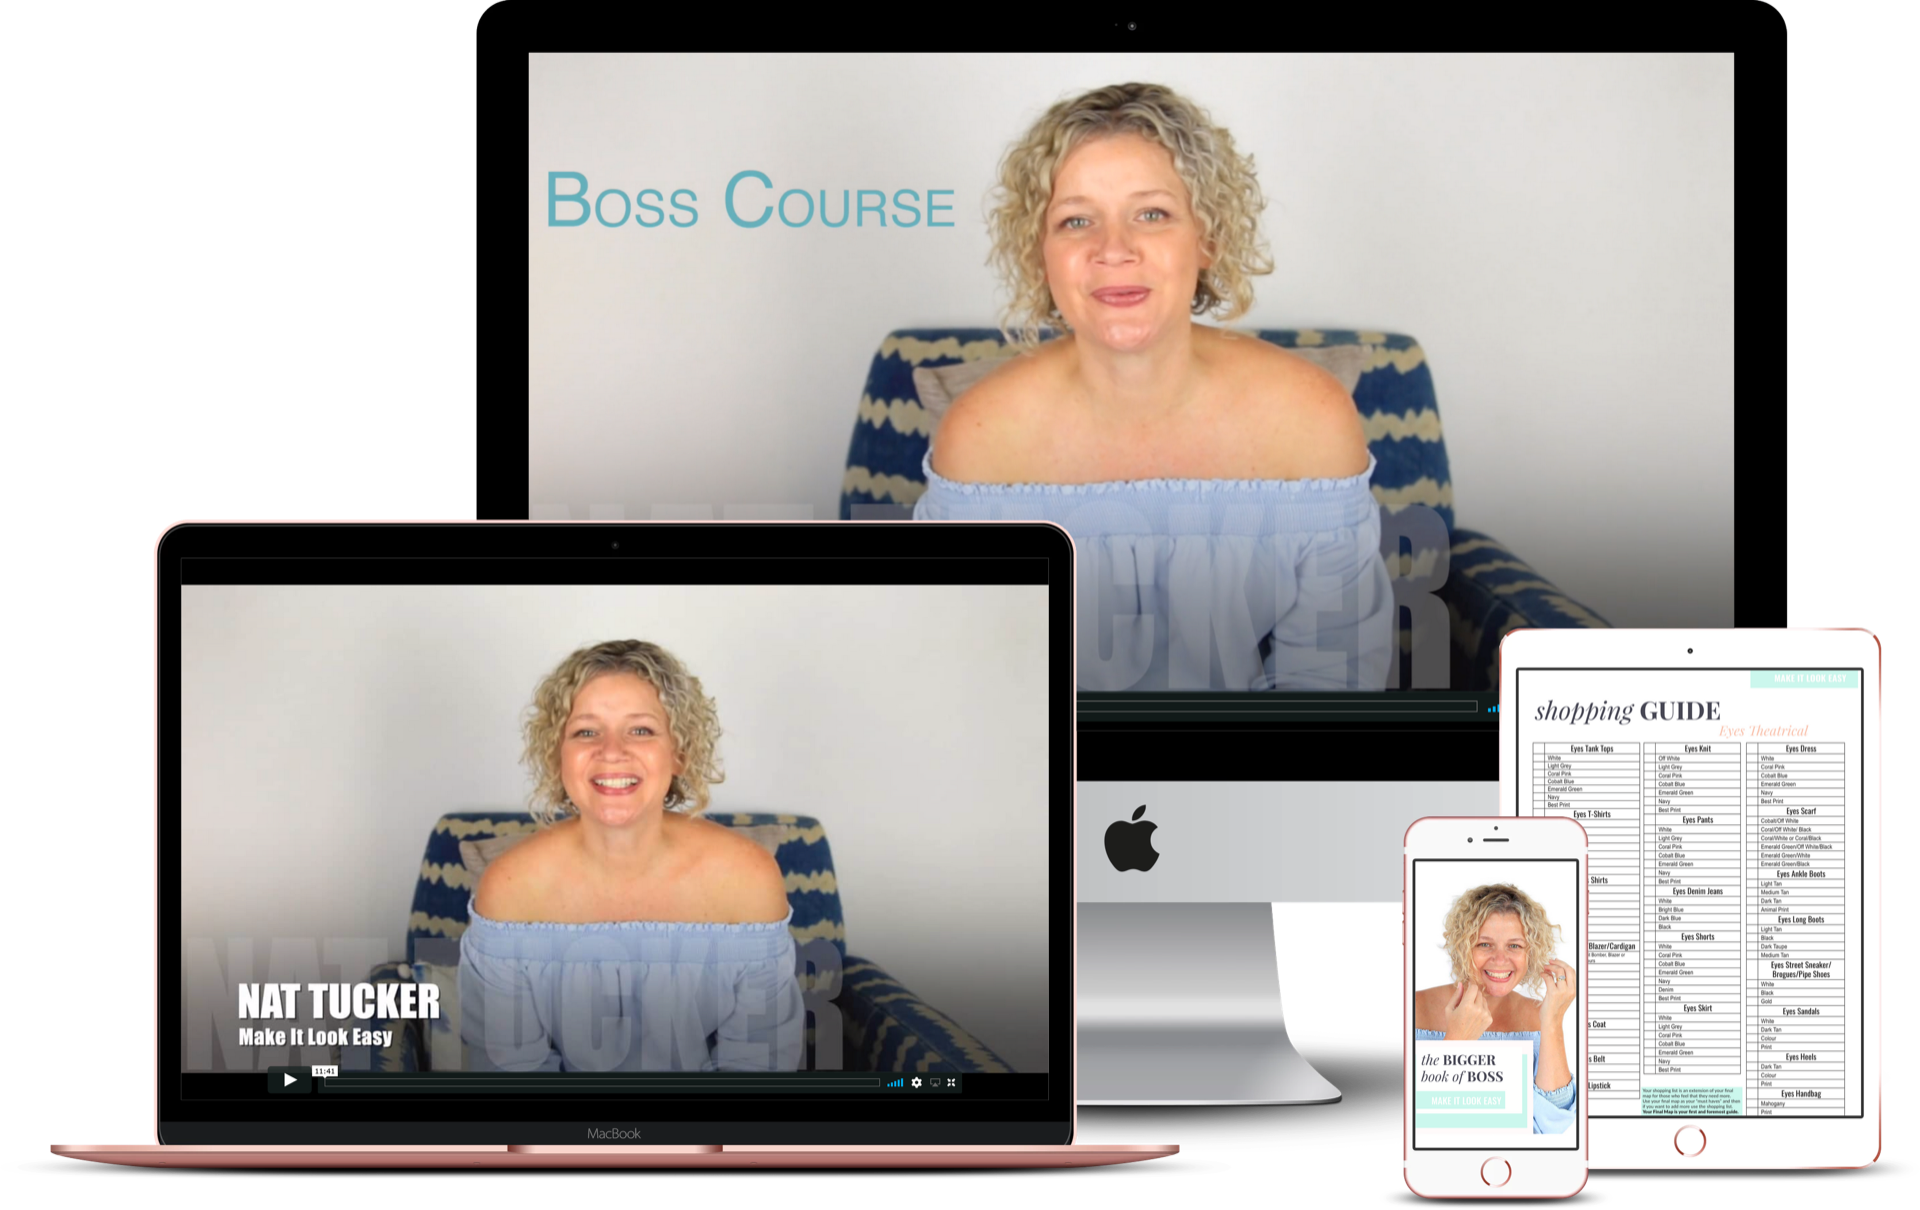 mockups-boss-course-4-devices.png